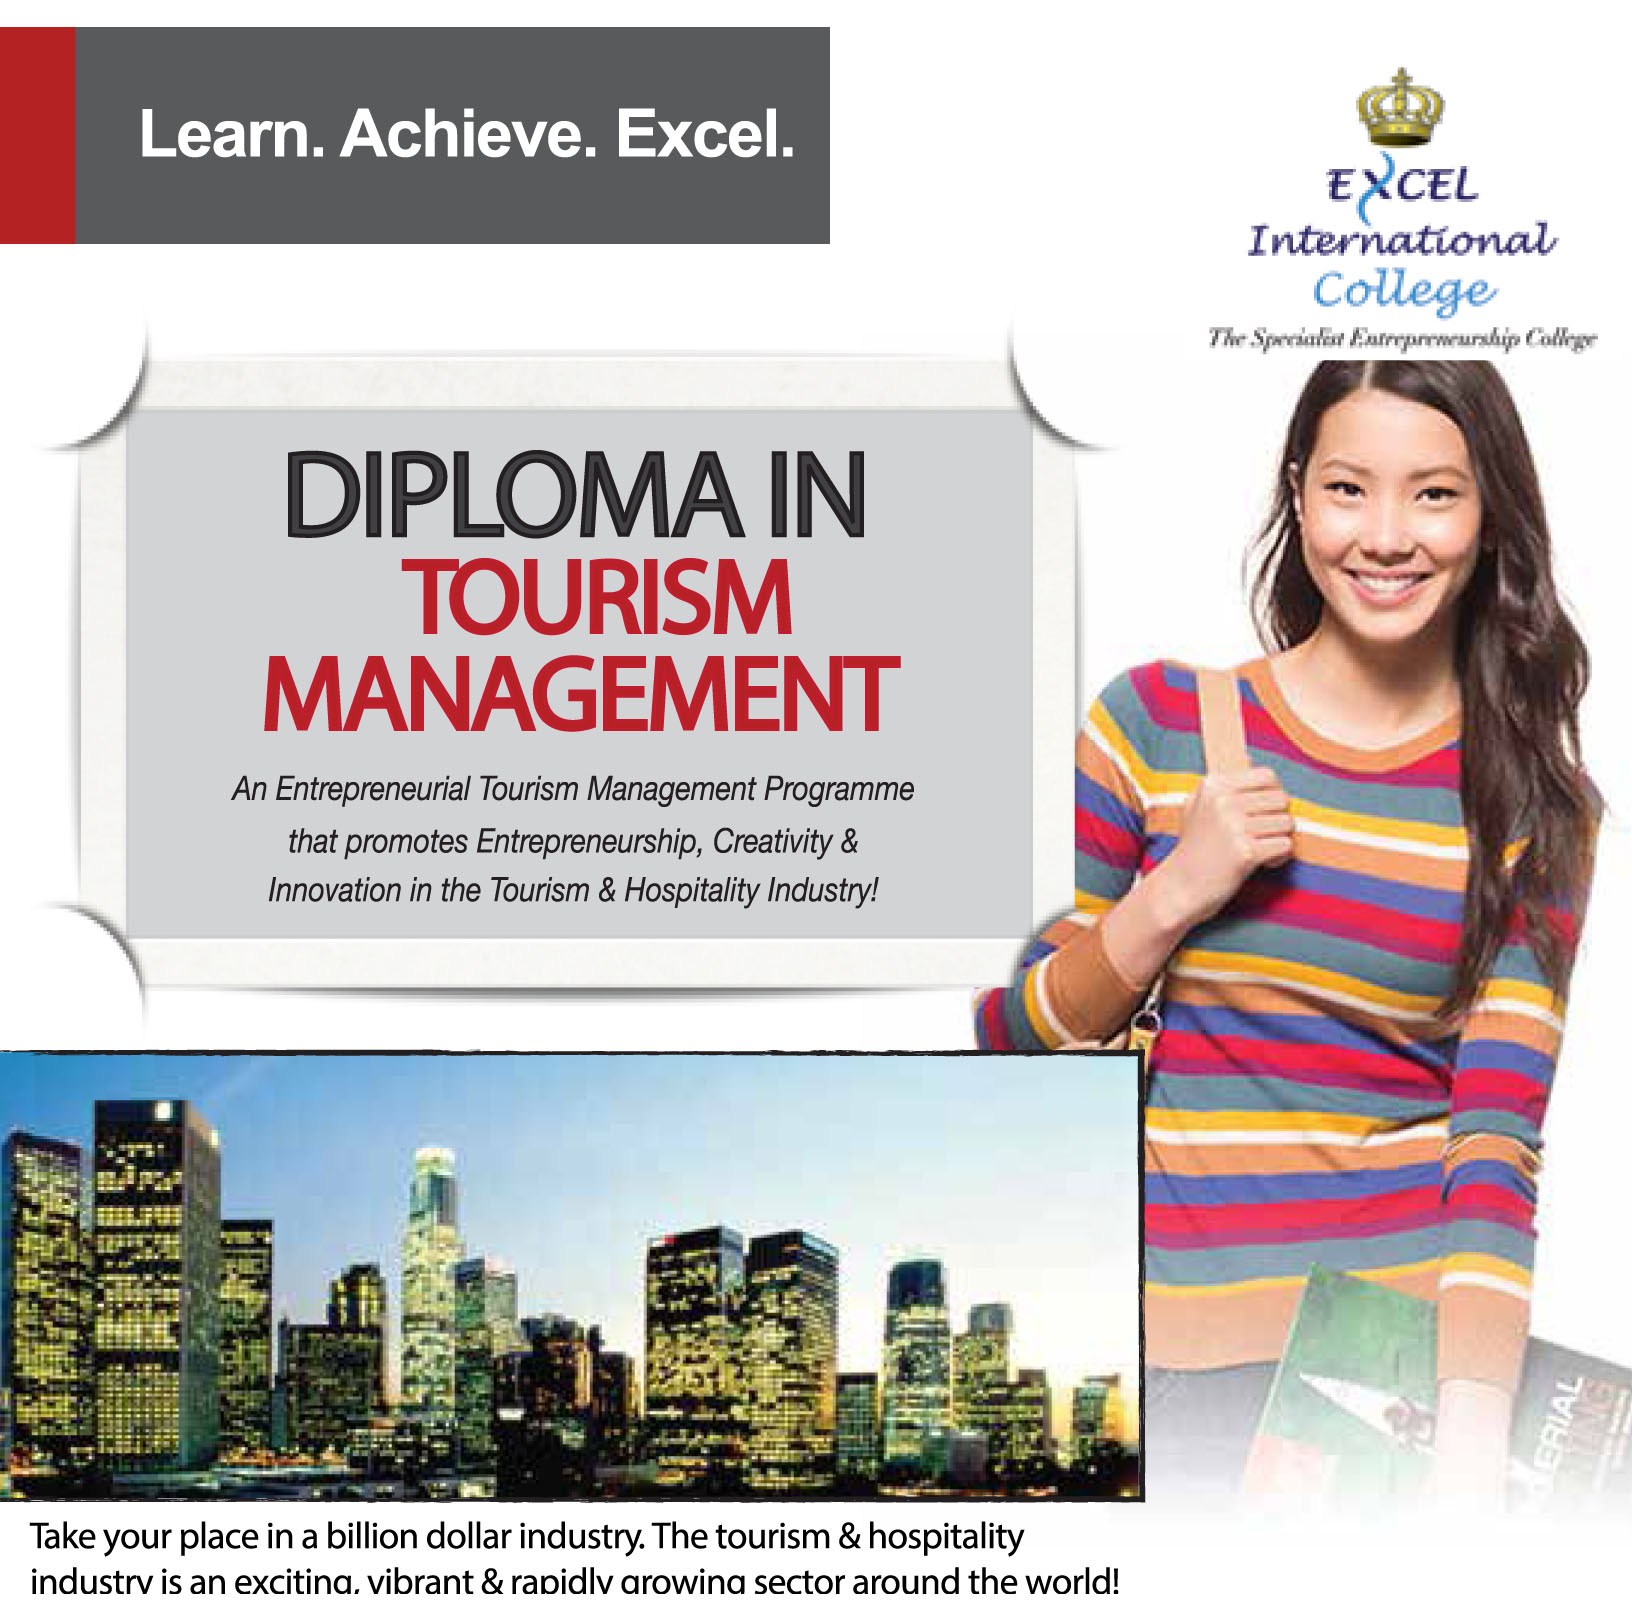 diploma in tourism management mqa a 10446